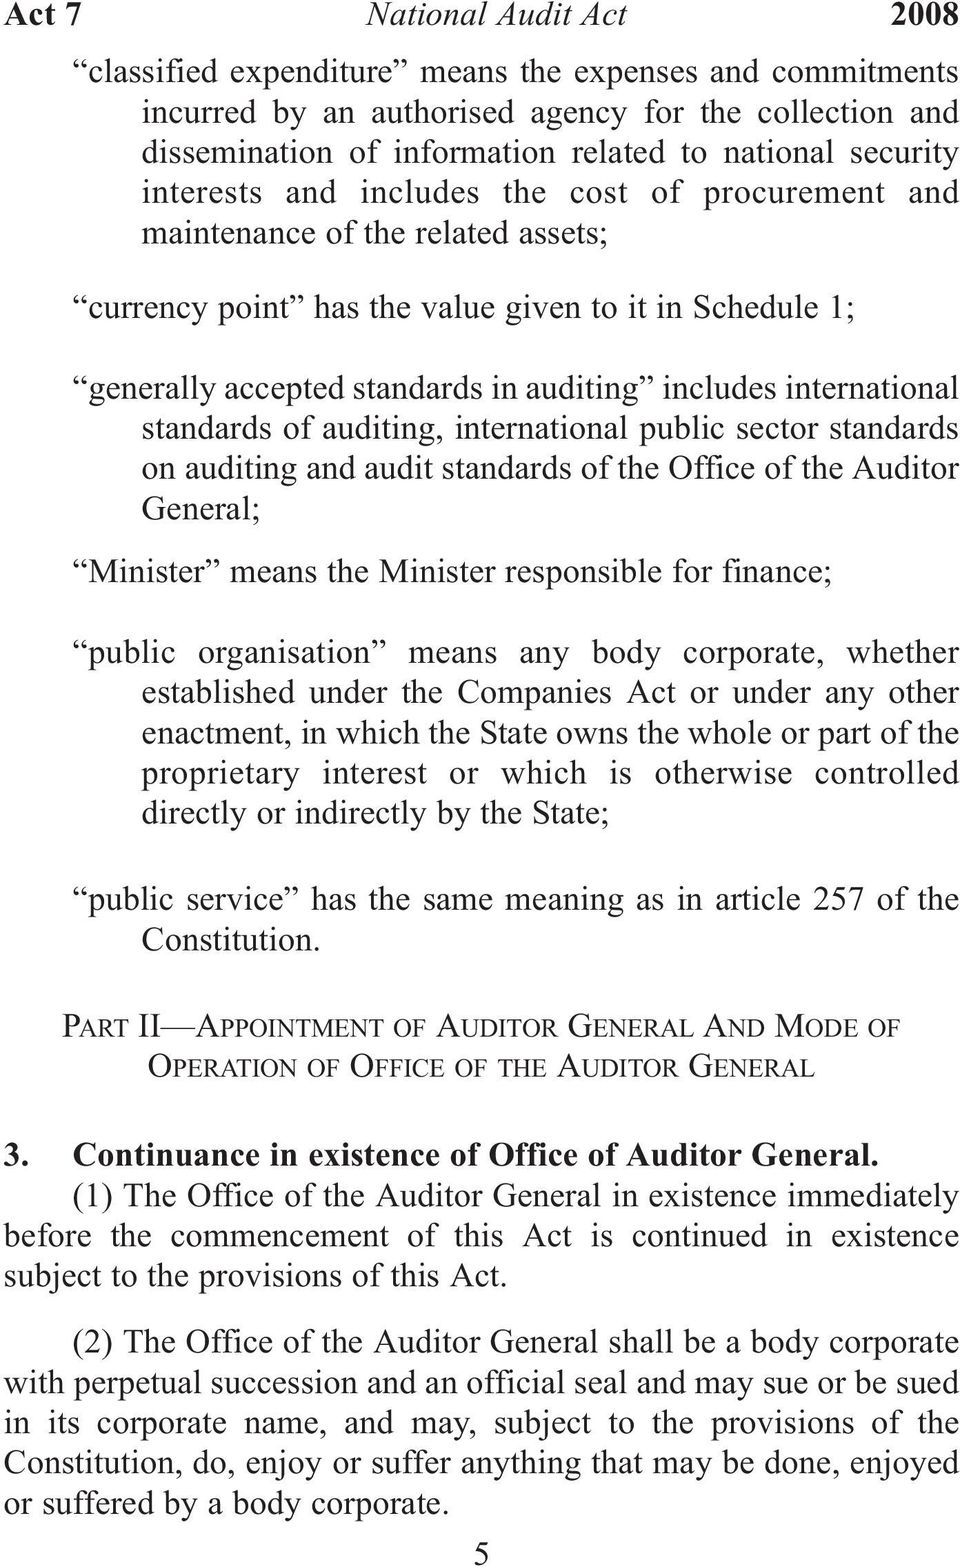 auditing, international public sector standards on auditing and audit standards of the Office of the Auditor General; Minister means the Minister responsible for finance; public organisation means